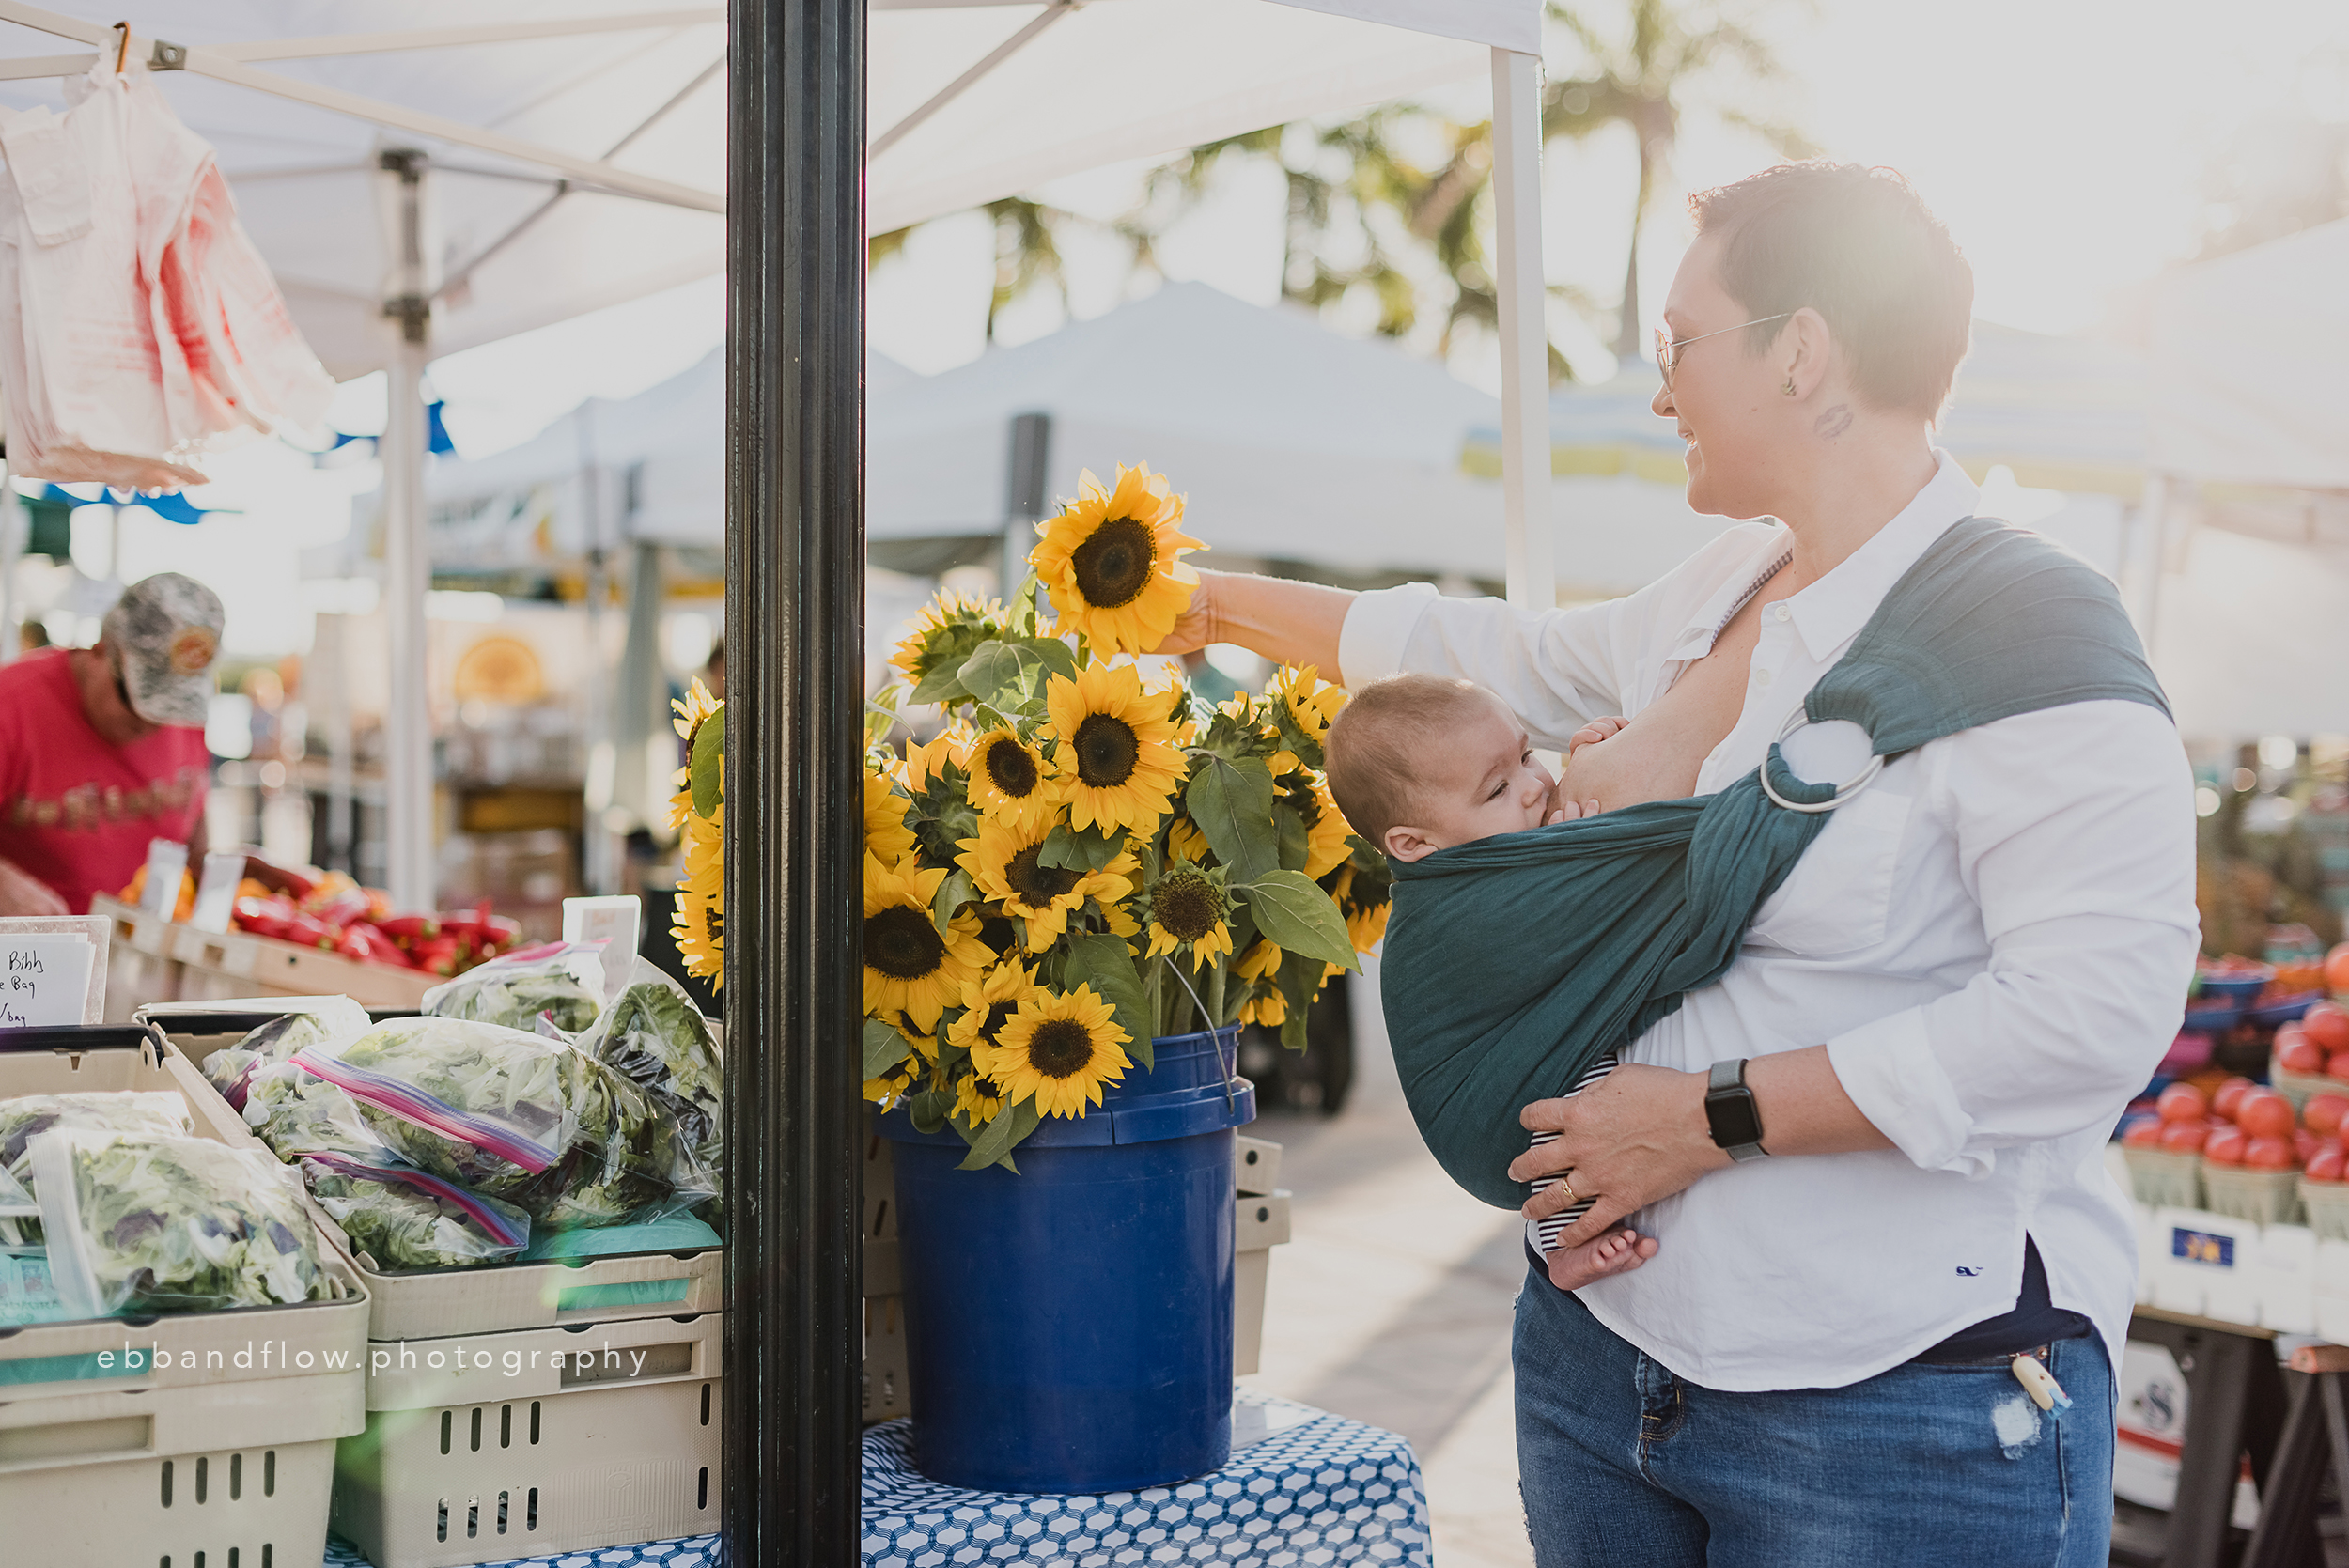 Fort Pierce Breastfeeding Photography - Ebb and Flow Photography -  Ring Sling shopping for sunflowers.jpg